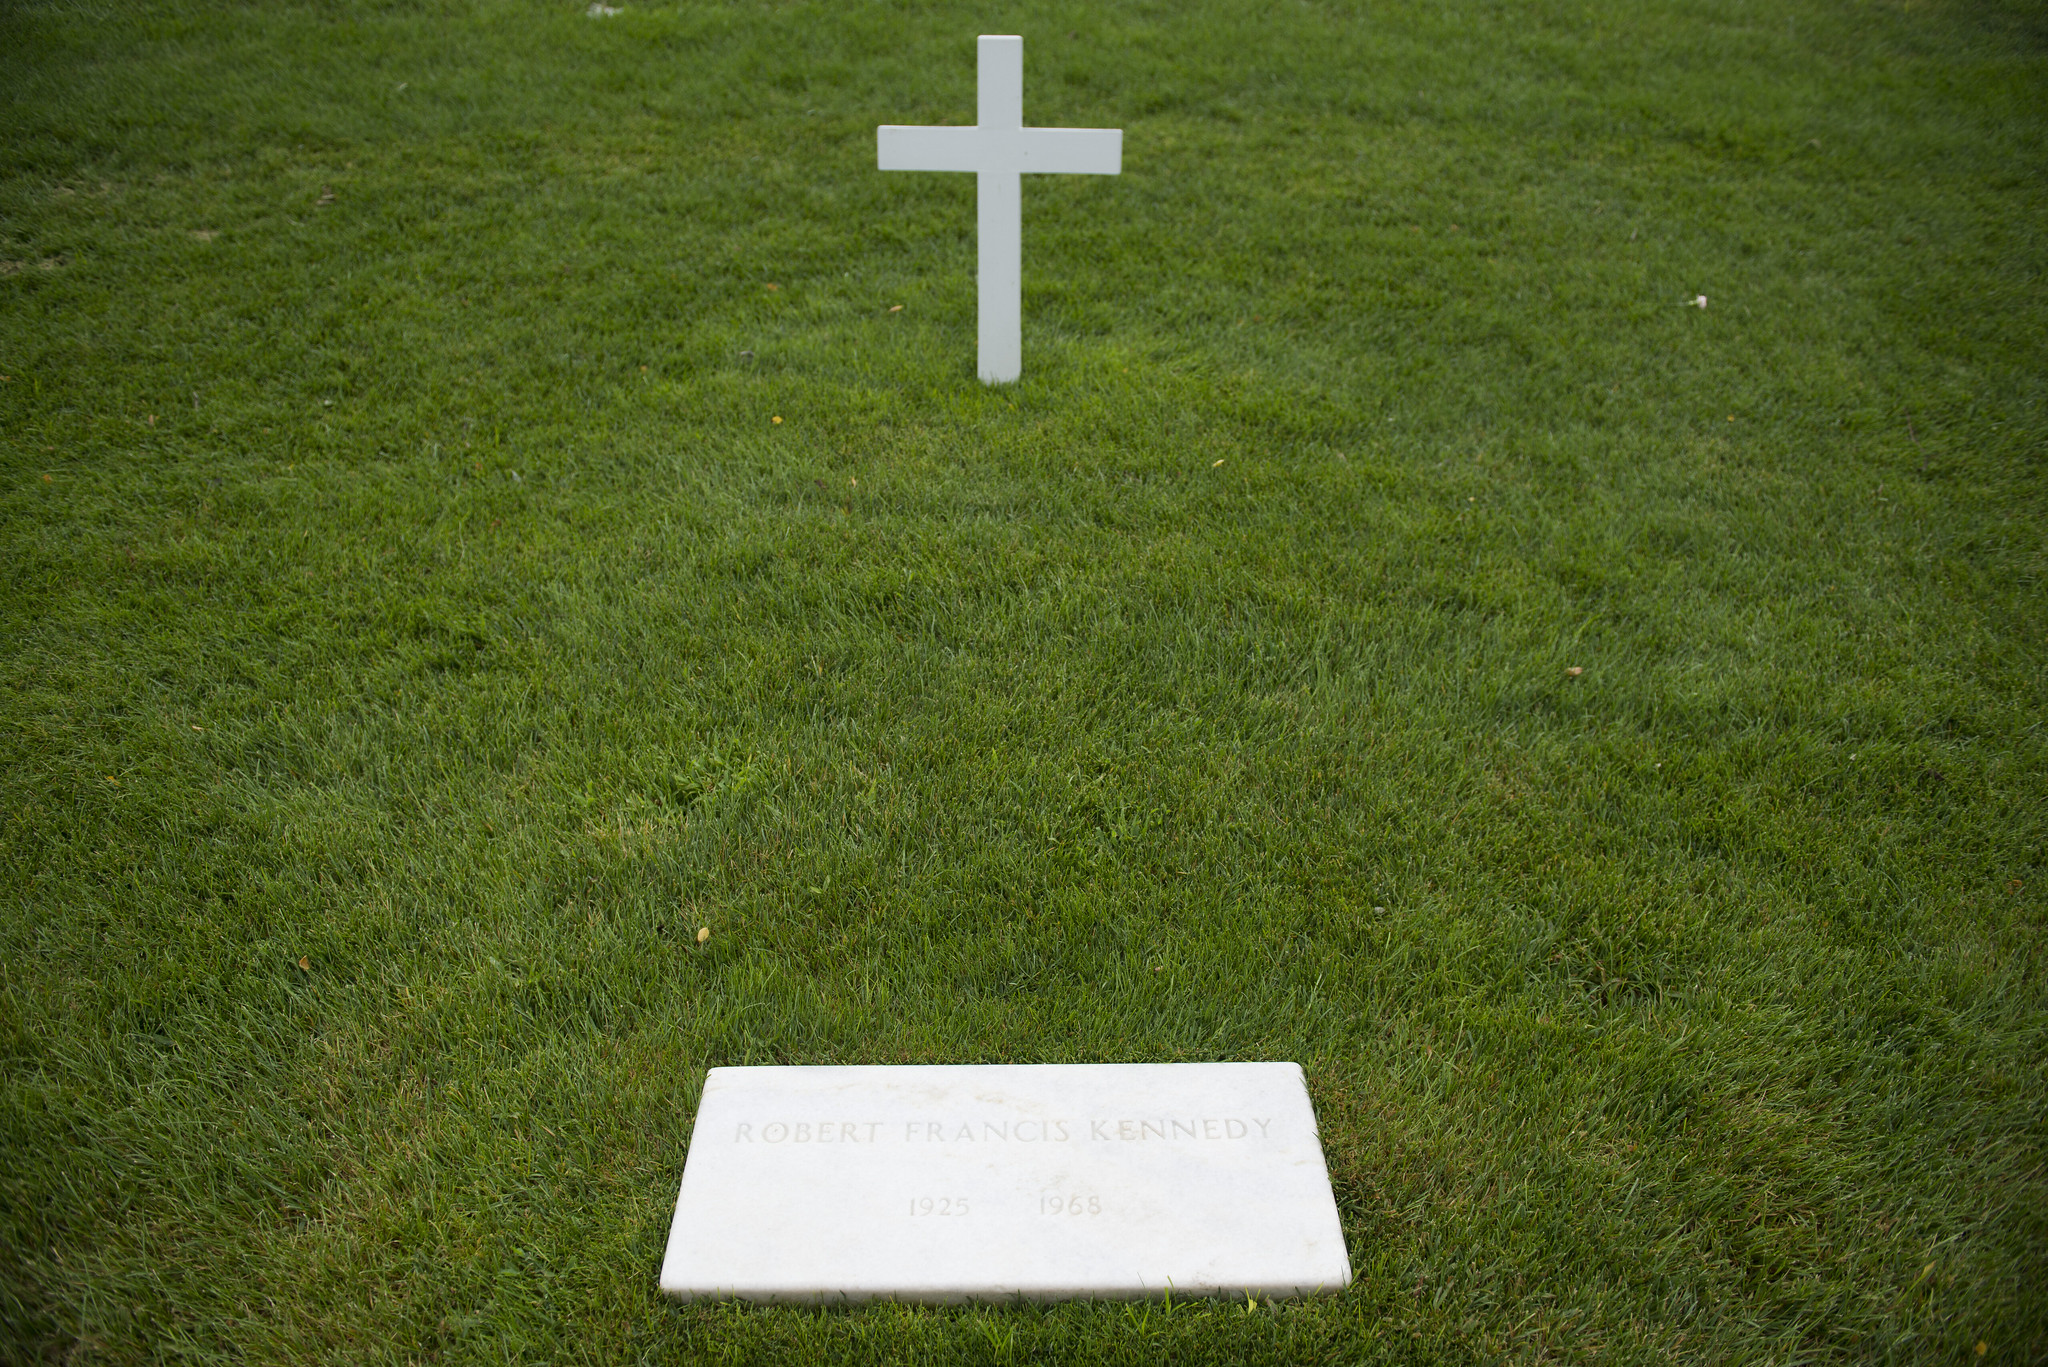 A simple white cross and flat marker at the gravesite of Robert F. Kennedy